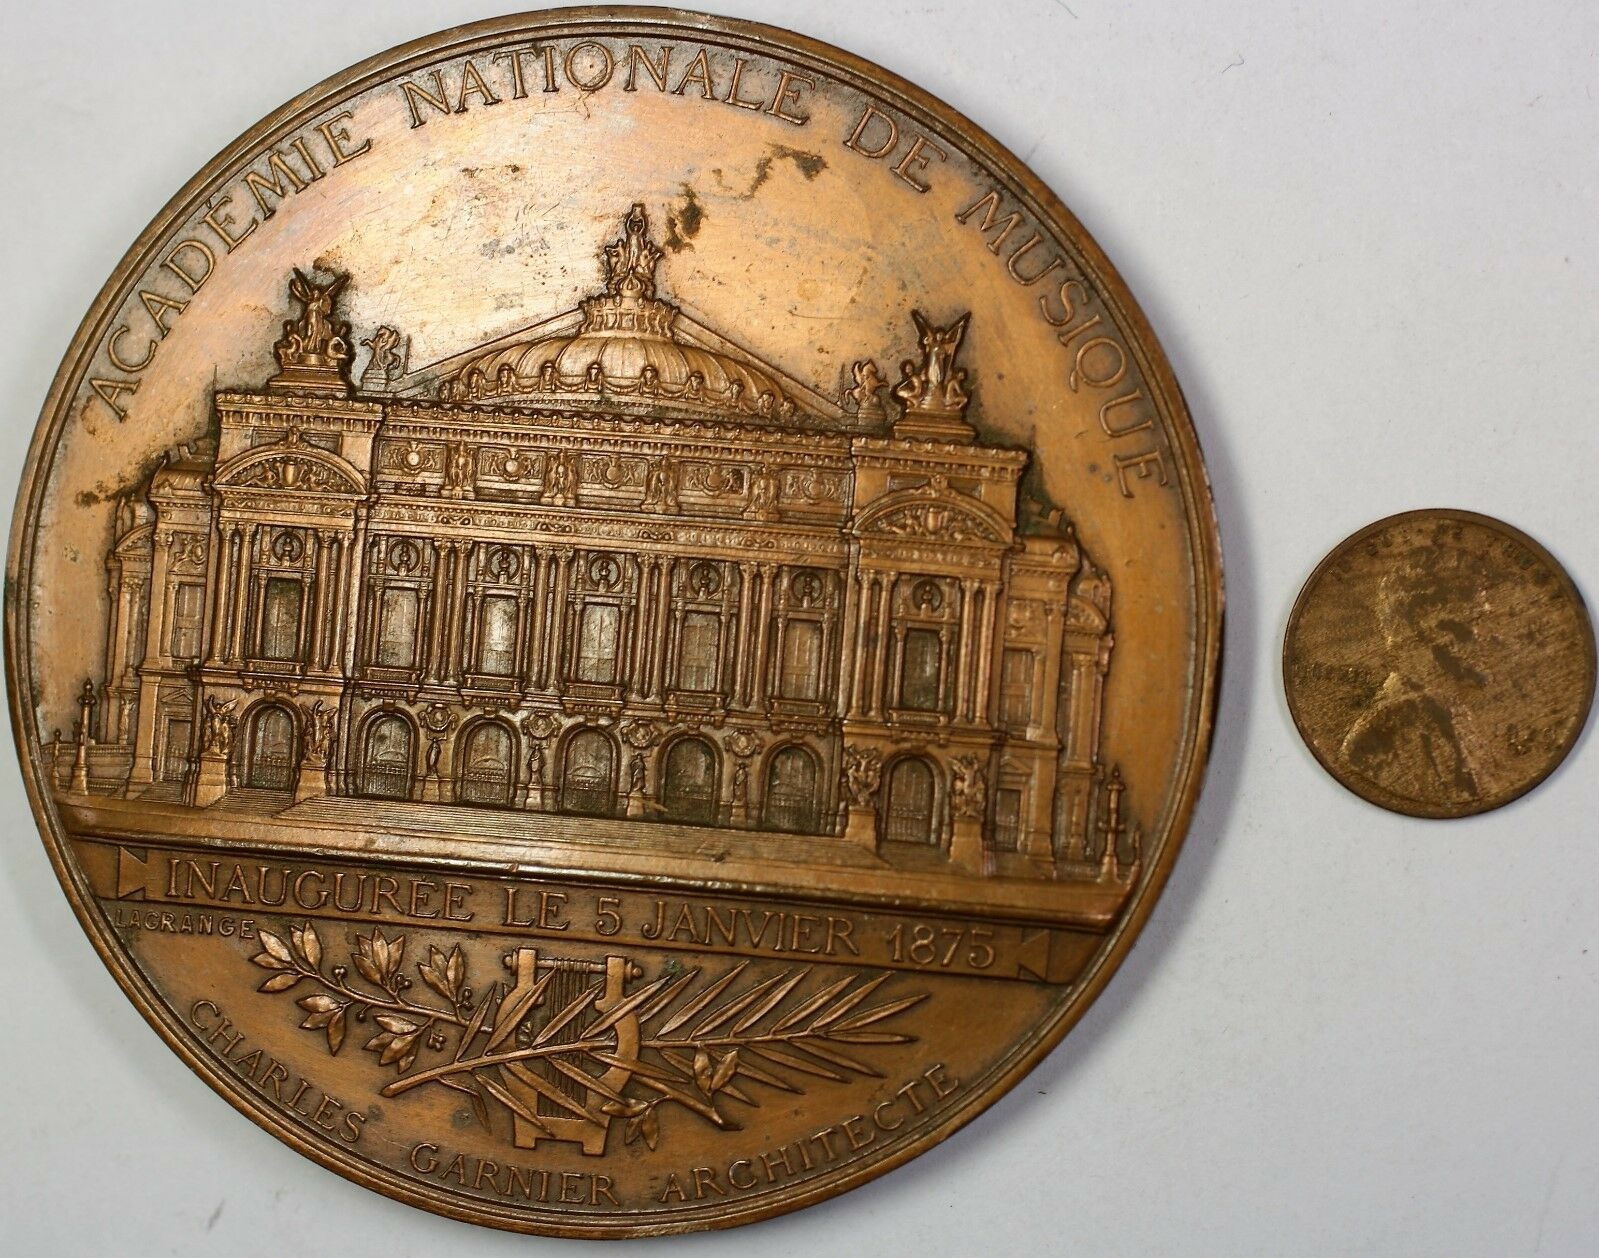 1875 Academie Nationale De Musique Large Commemorative French Bronze Medal